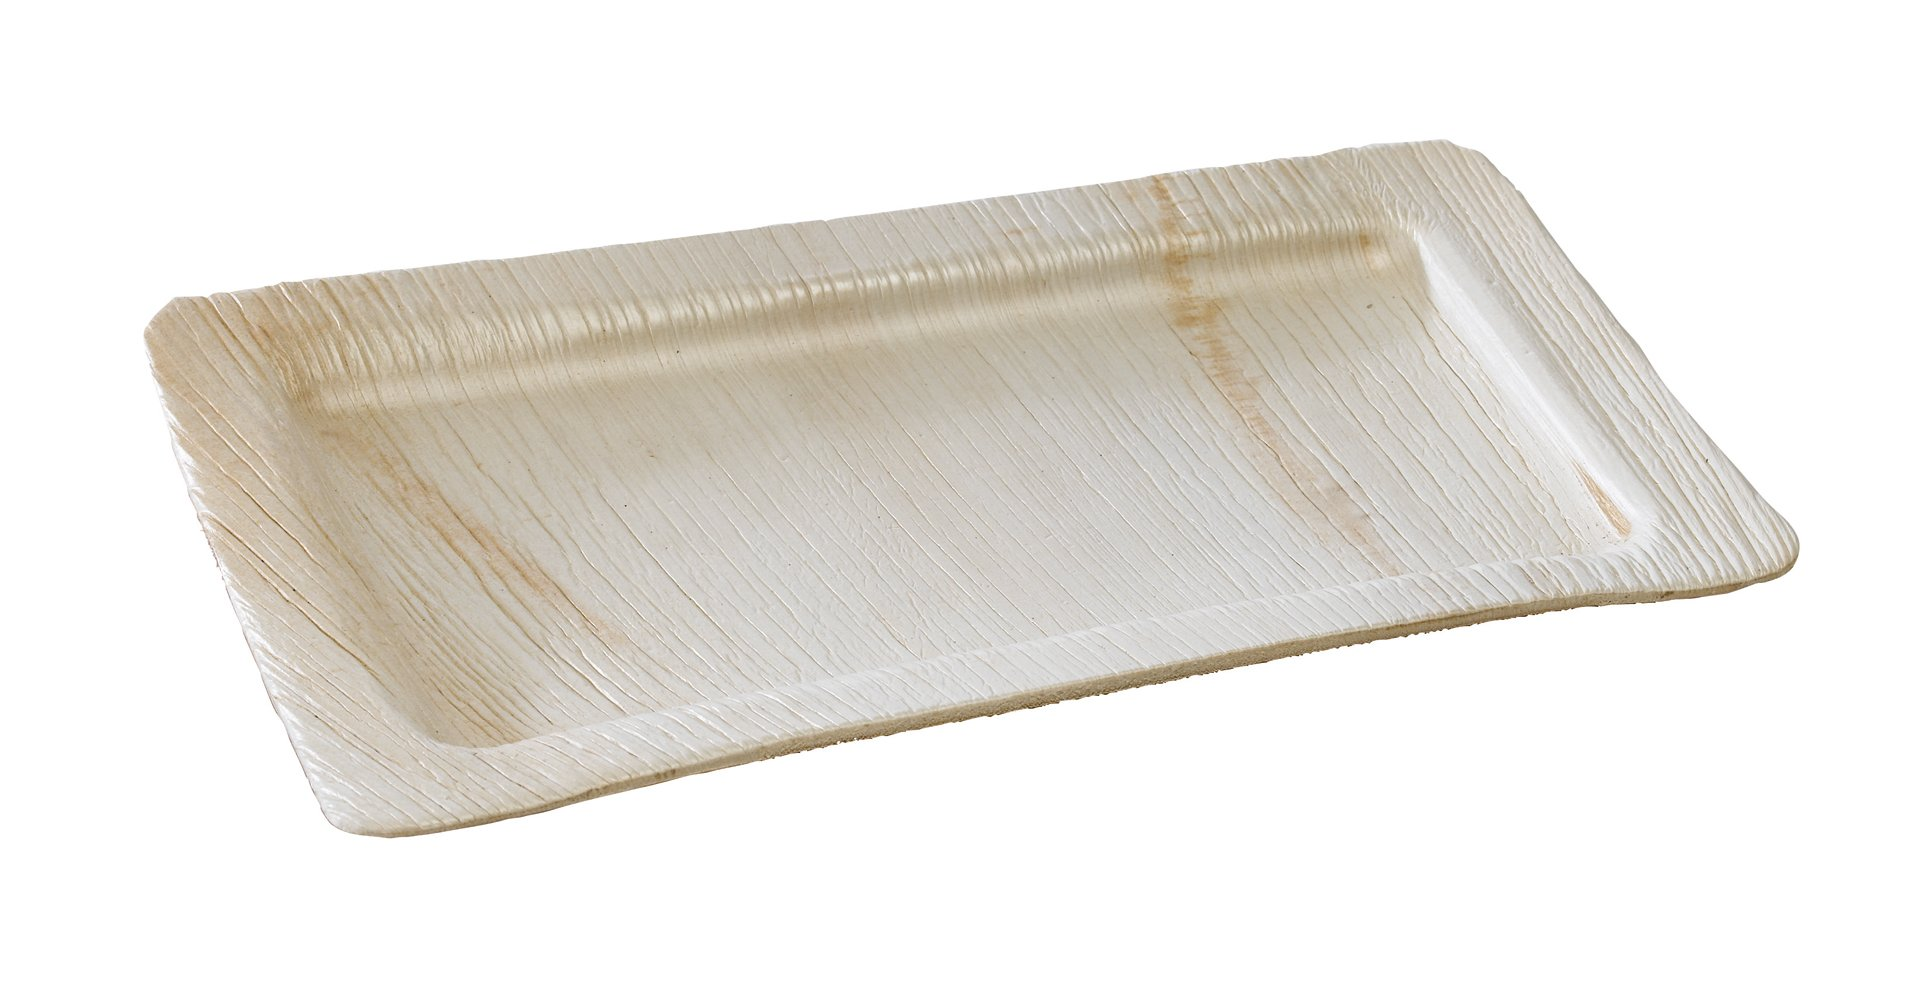 PacknWood Palm Leaf Rectangular Plate, 11'' x 7'' (Case of 100) by PacknWood